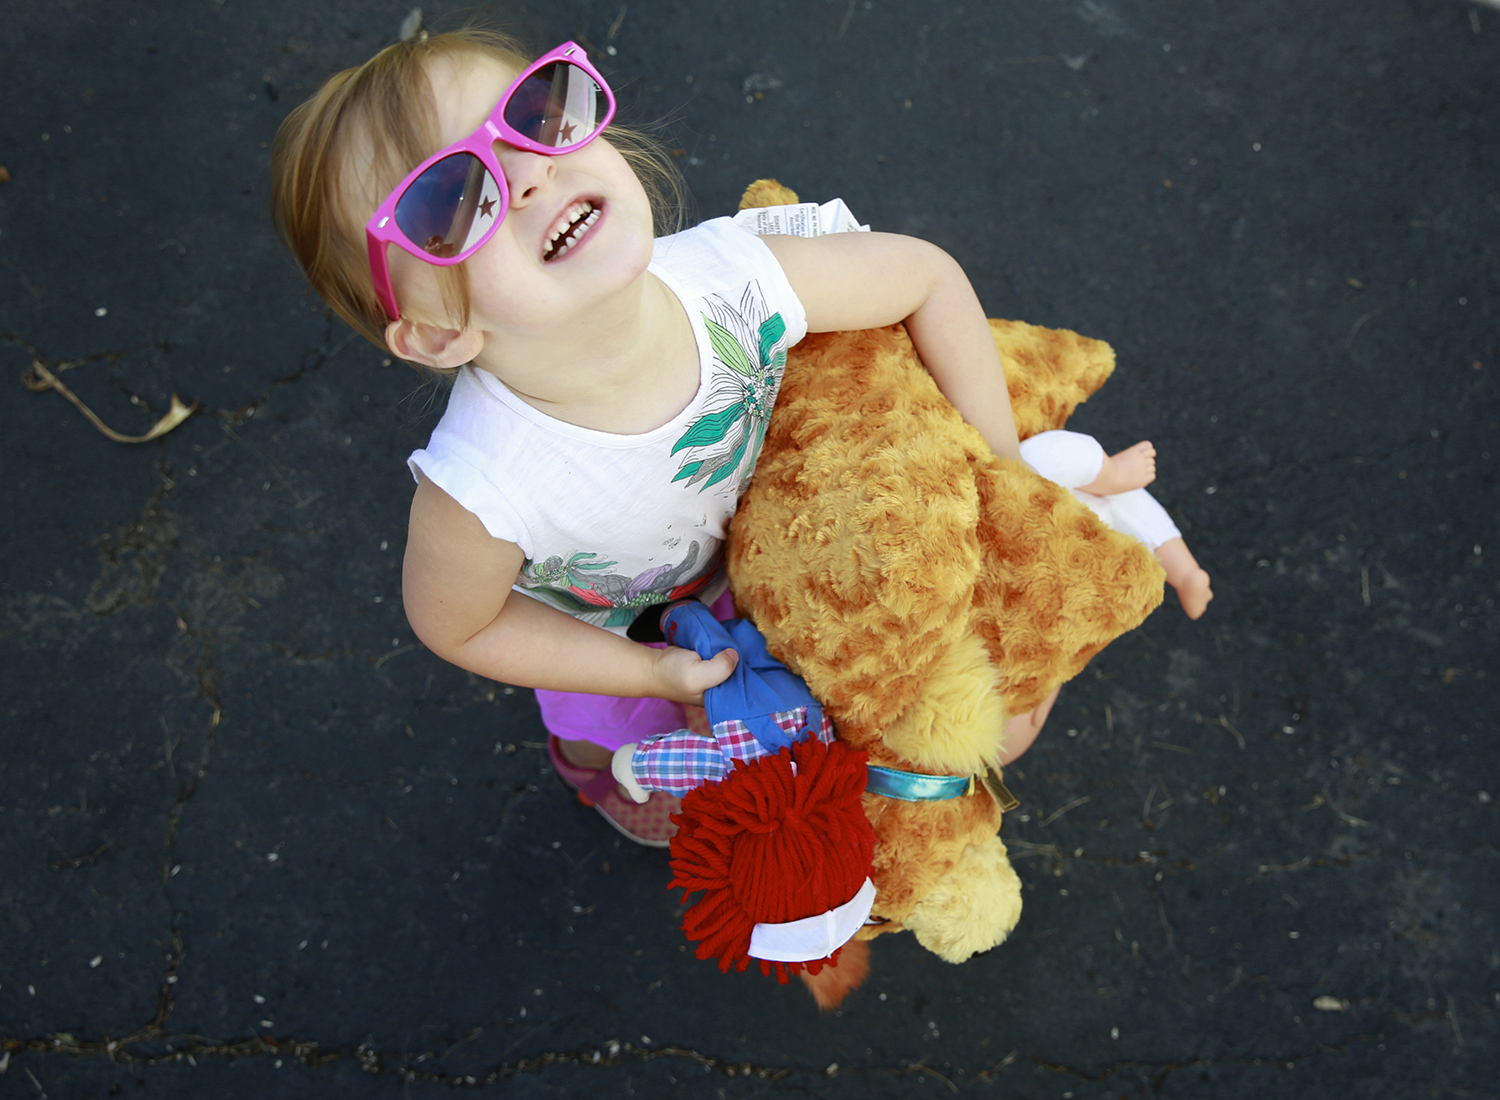 Copy of toddler holding stuffed animals in driveway penn yan new york